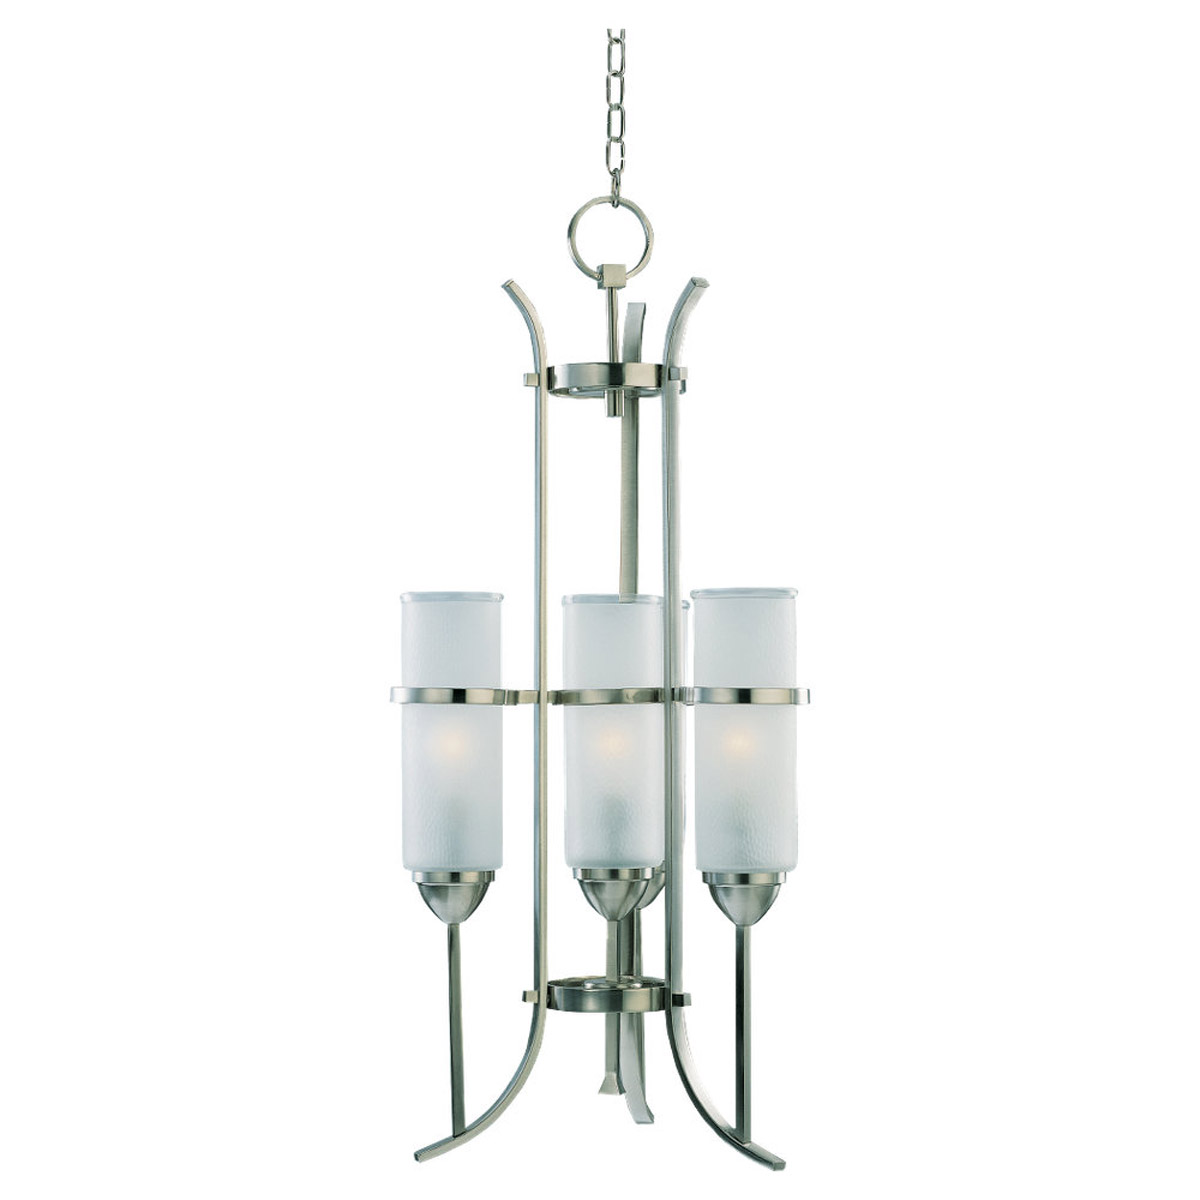 Sea Gull Lighting Eternity 4 Light Chandelier in Brushed Nickel 51115-962